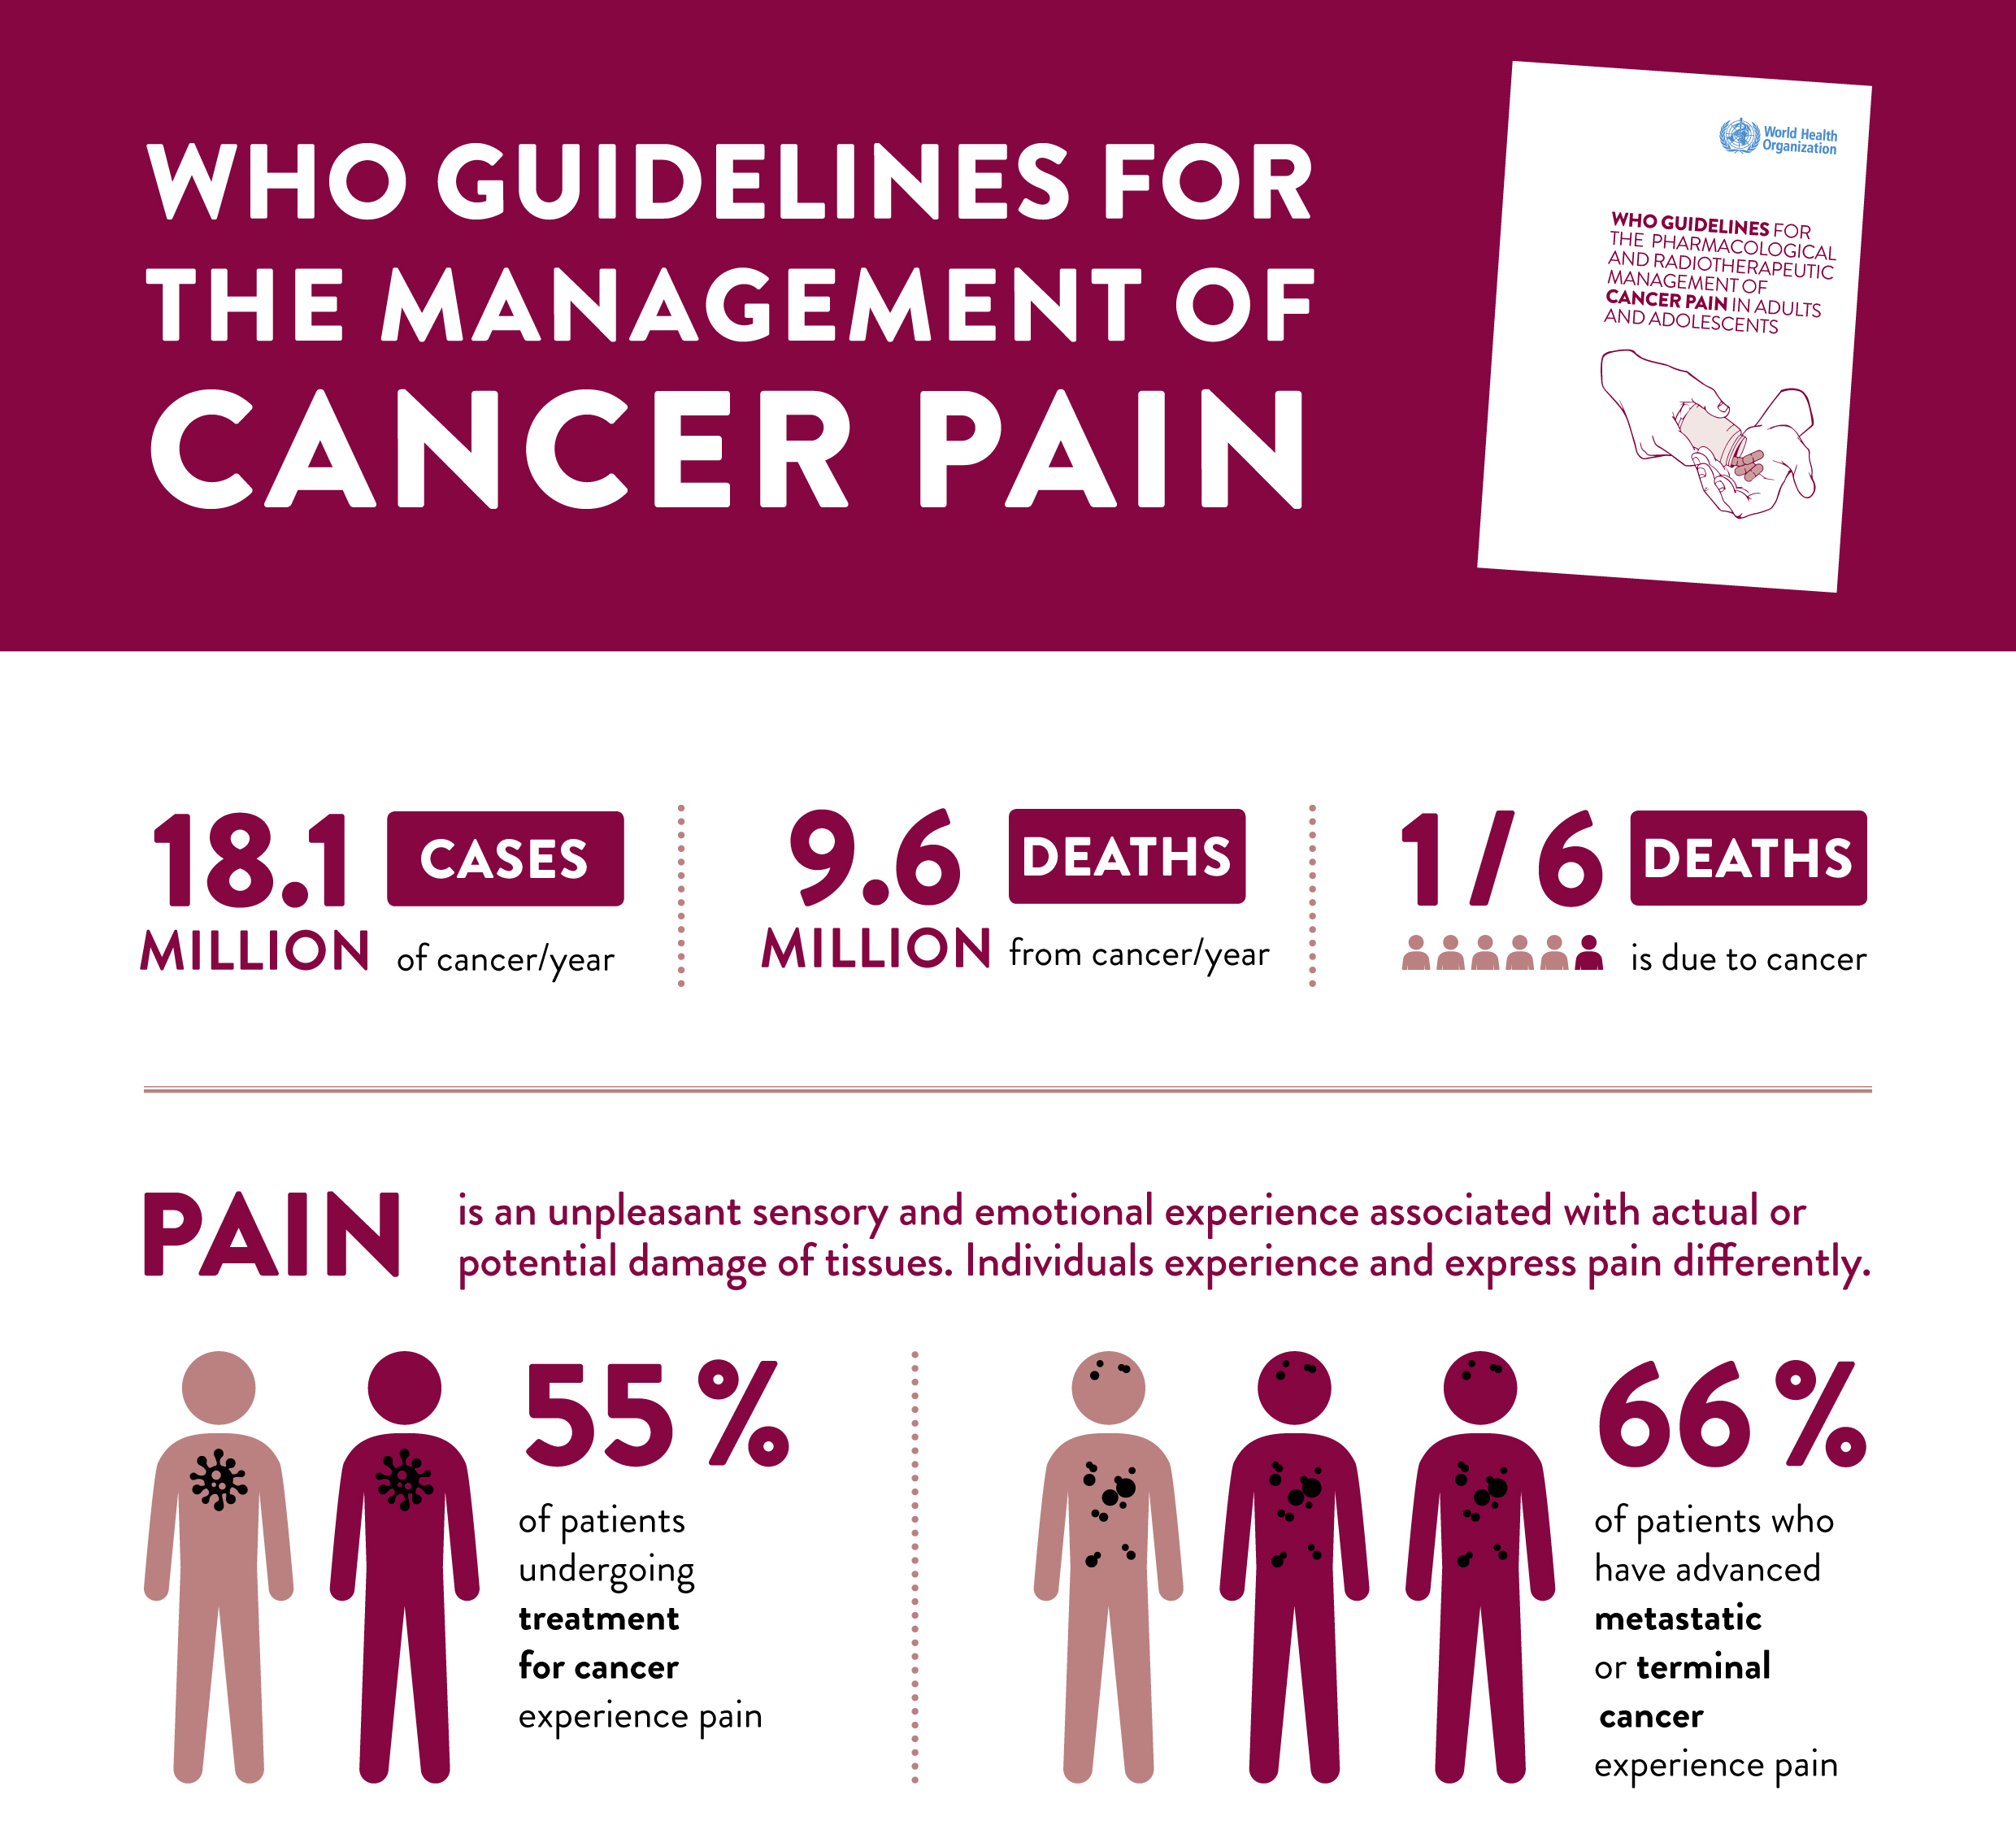 New guidance released on managing cancer pain, a major cause of unnecessary suffering